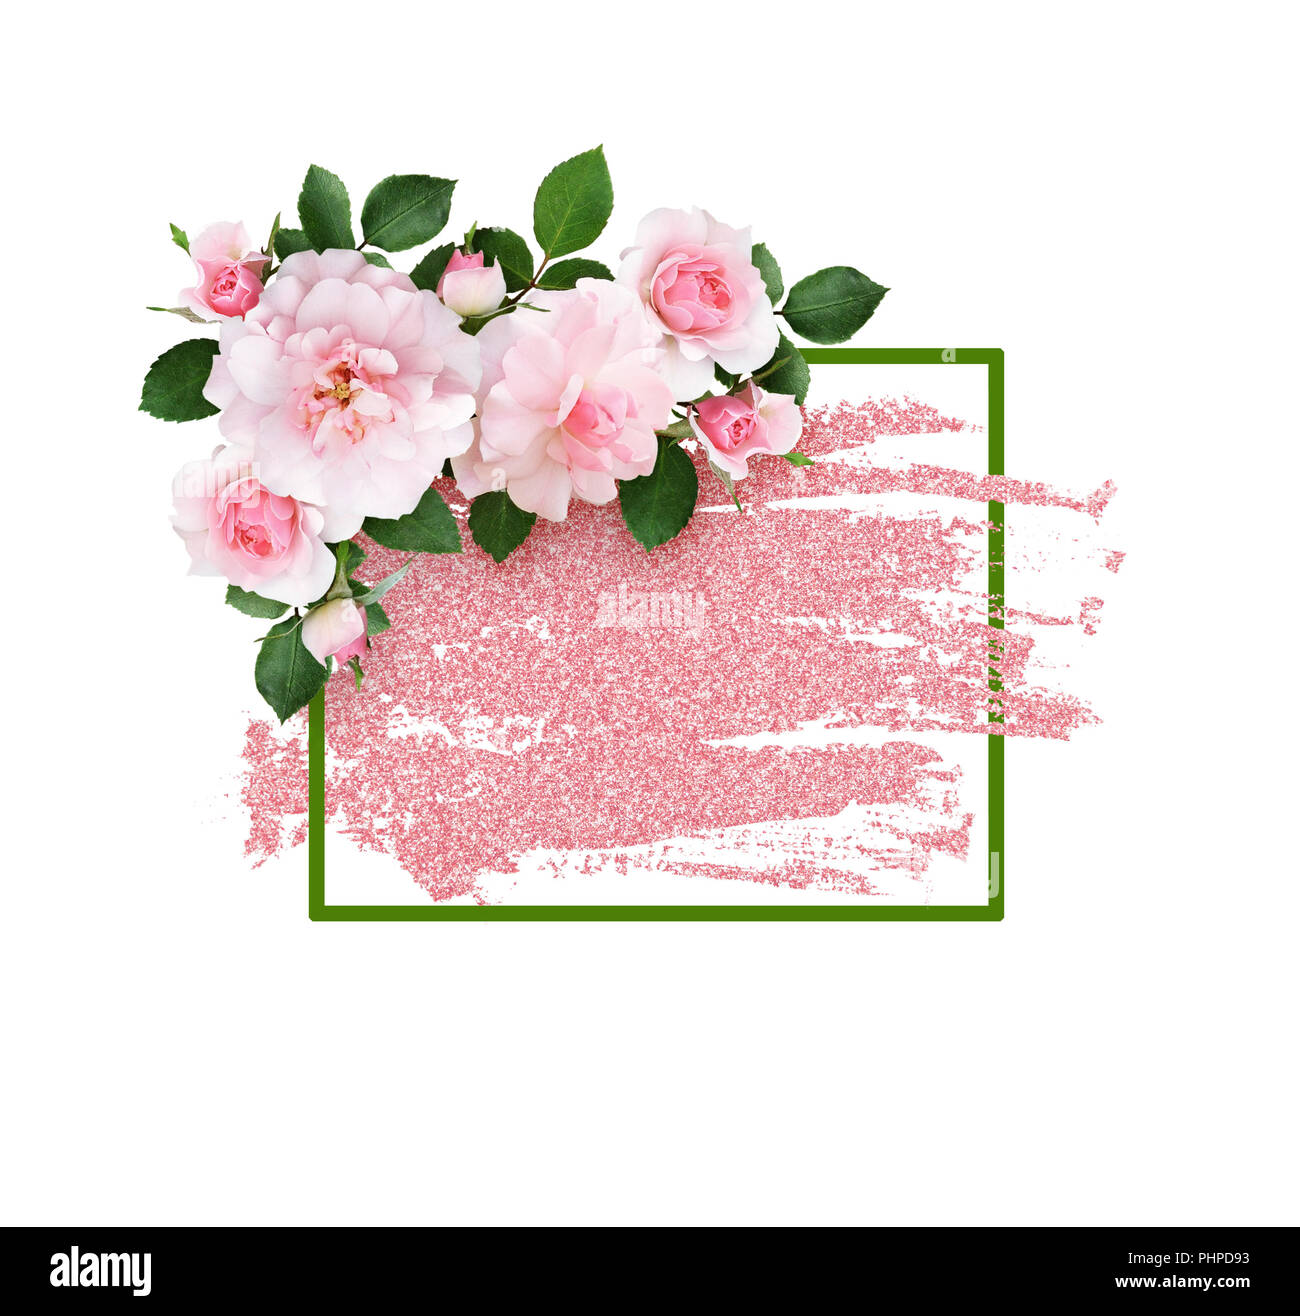 Pink Rose Flowers And A Green Frame On Glitter Brushstroke Isolated